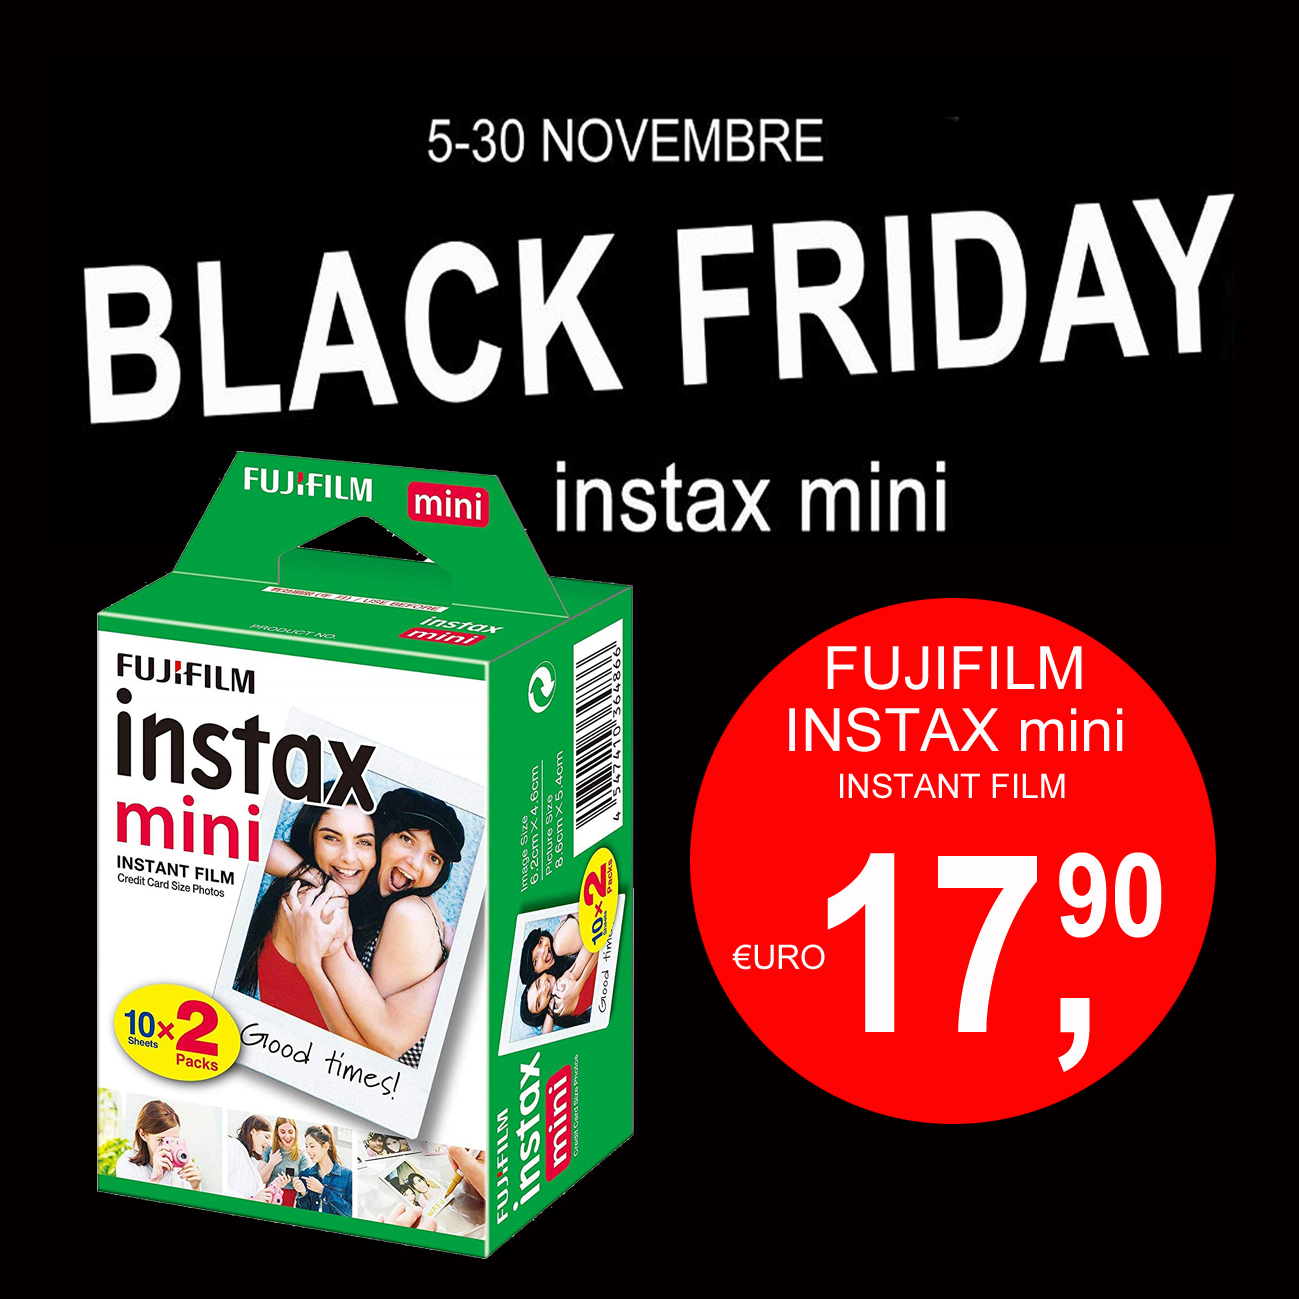 CALABRESE FOTOTTICA GROUP INFORMA: Black friday 2019 Fujifilm Instax mini INSTANT FILM 10 sheets x 2 packs a Bologna